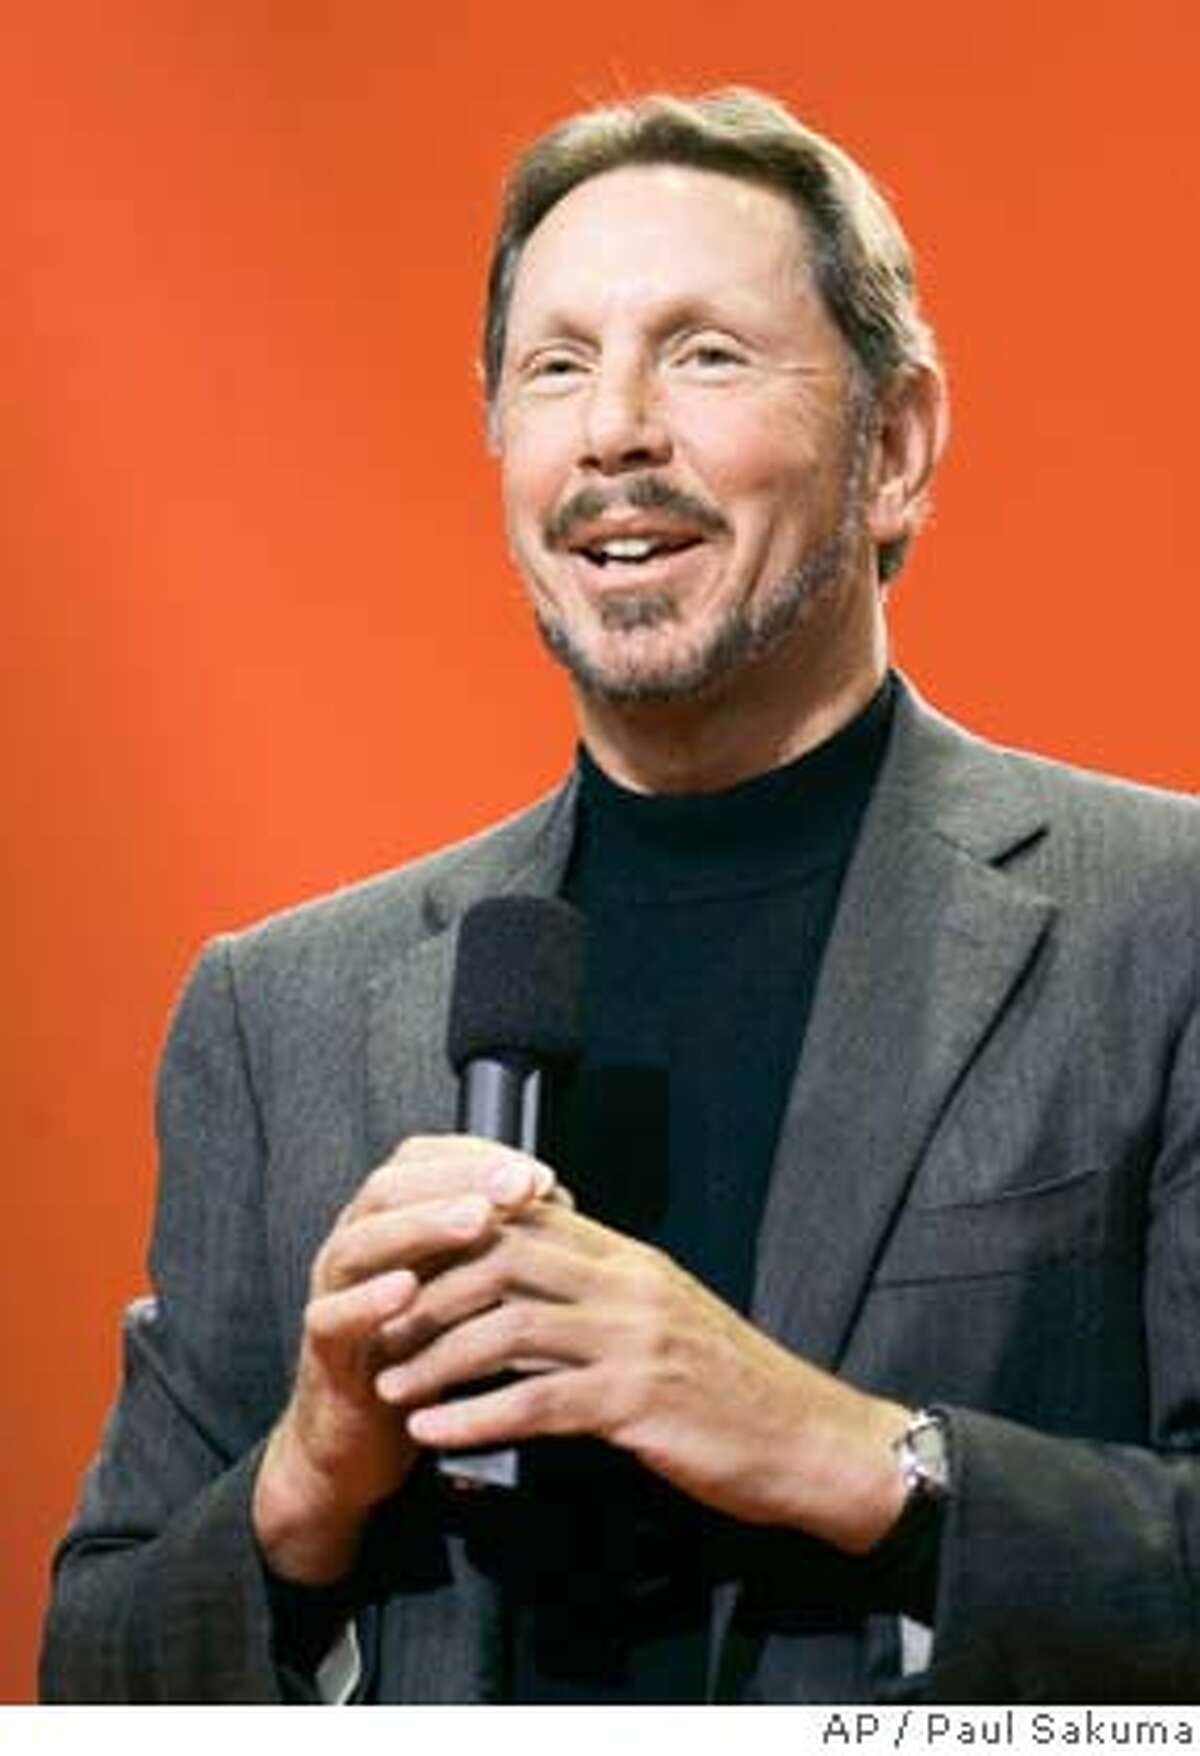 **HOLD FOR RELEASE UNTIL 6:01 p.m. EDT THURSDAY, SEPT. 20, 2007. THIS STORY MAY NOT BE PUBLISHED, BROADCAST OR POSTED ONLINE BEFORE 6:01 p.m. EDT THURSDAY** **FILE** Oracle CEO Larry Ellison smiles during his keynote address at Oracle Open World conference in San Francisco, in this Oct. 25, 2006 file photo. Forbes magazine releases its annual rankings of the nation's wealthiest individuals on Thursday, Sept. 20, 2007. (AP Photo/Paul Sakuma, file) Ran on: 09-21-2007 Larry Ellison Rank: 4 City: Woodside Wealth: $26 billion